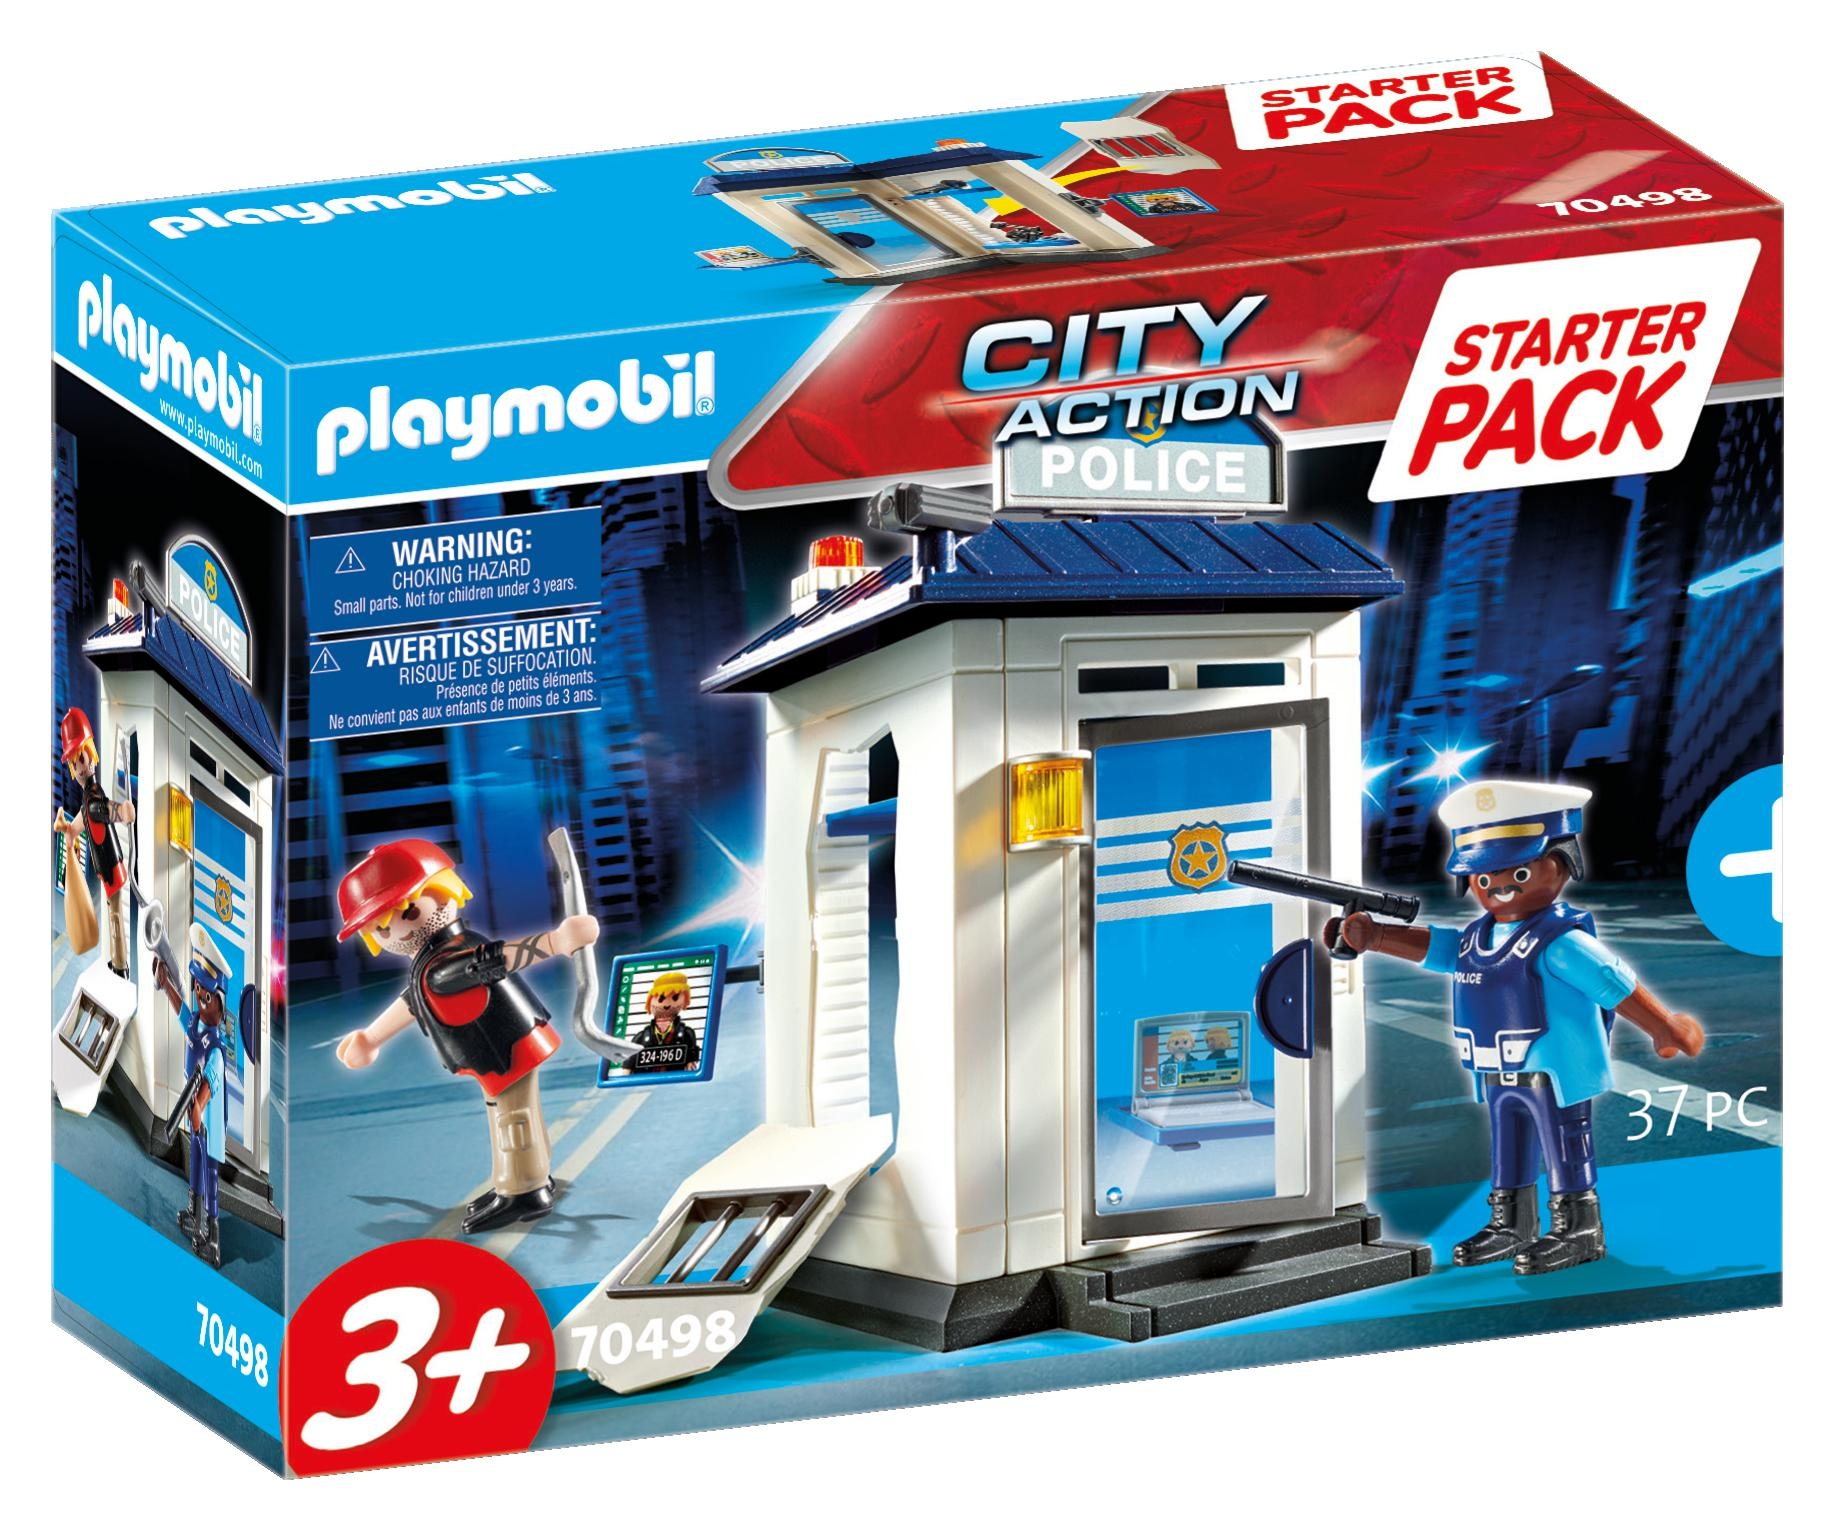 Playmobil City Action: Starter Pack Policja (70498)